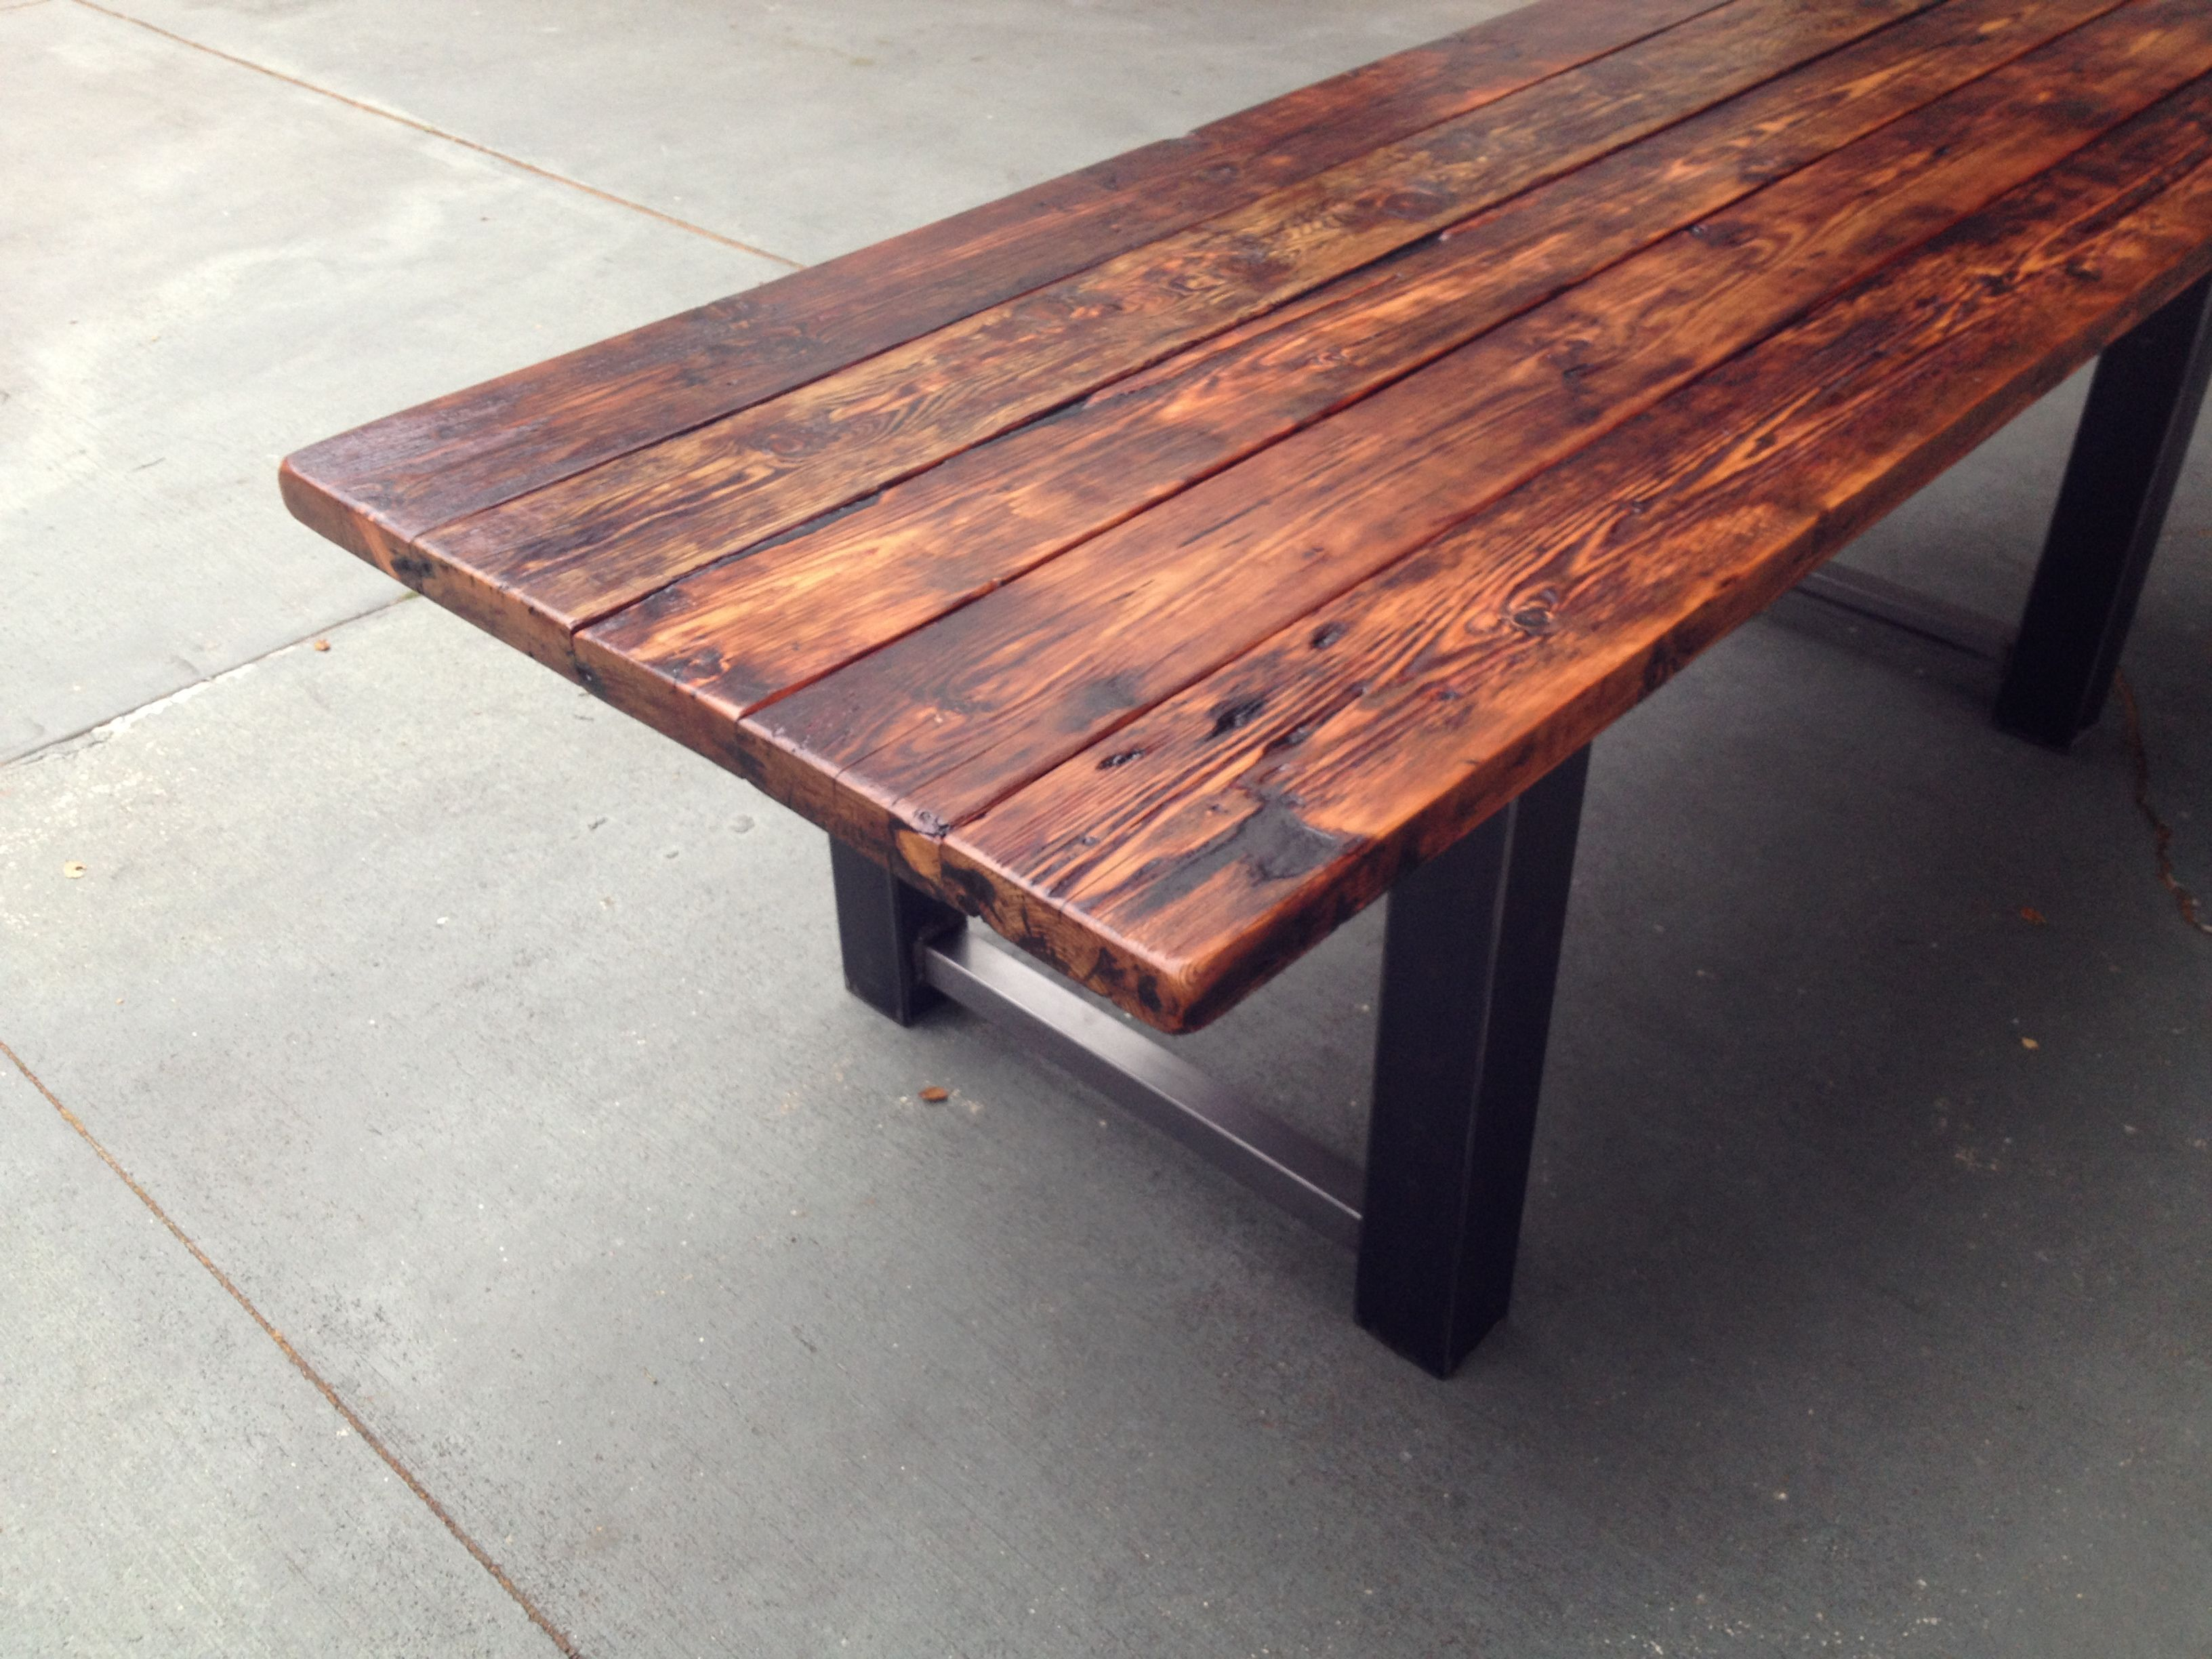 Reclaimed Wood and Metal Dining Table 8 | Renovation Ideas ...